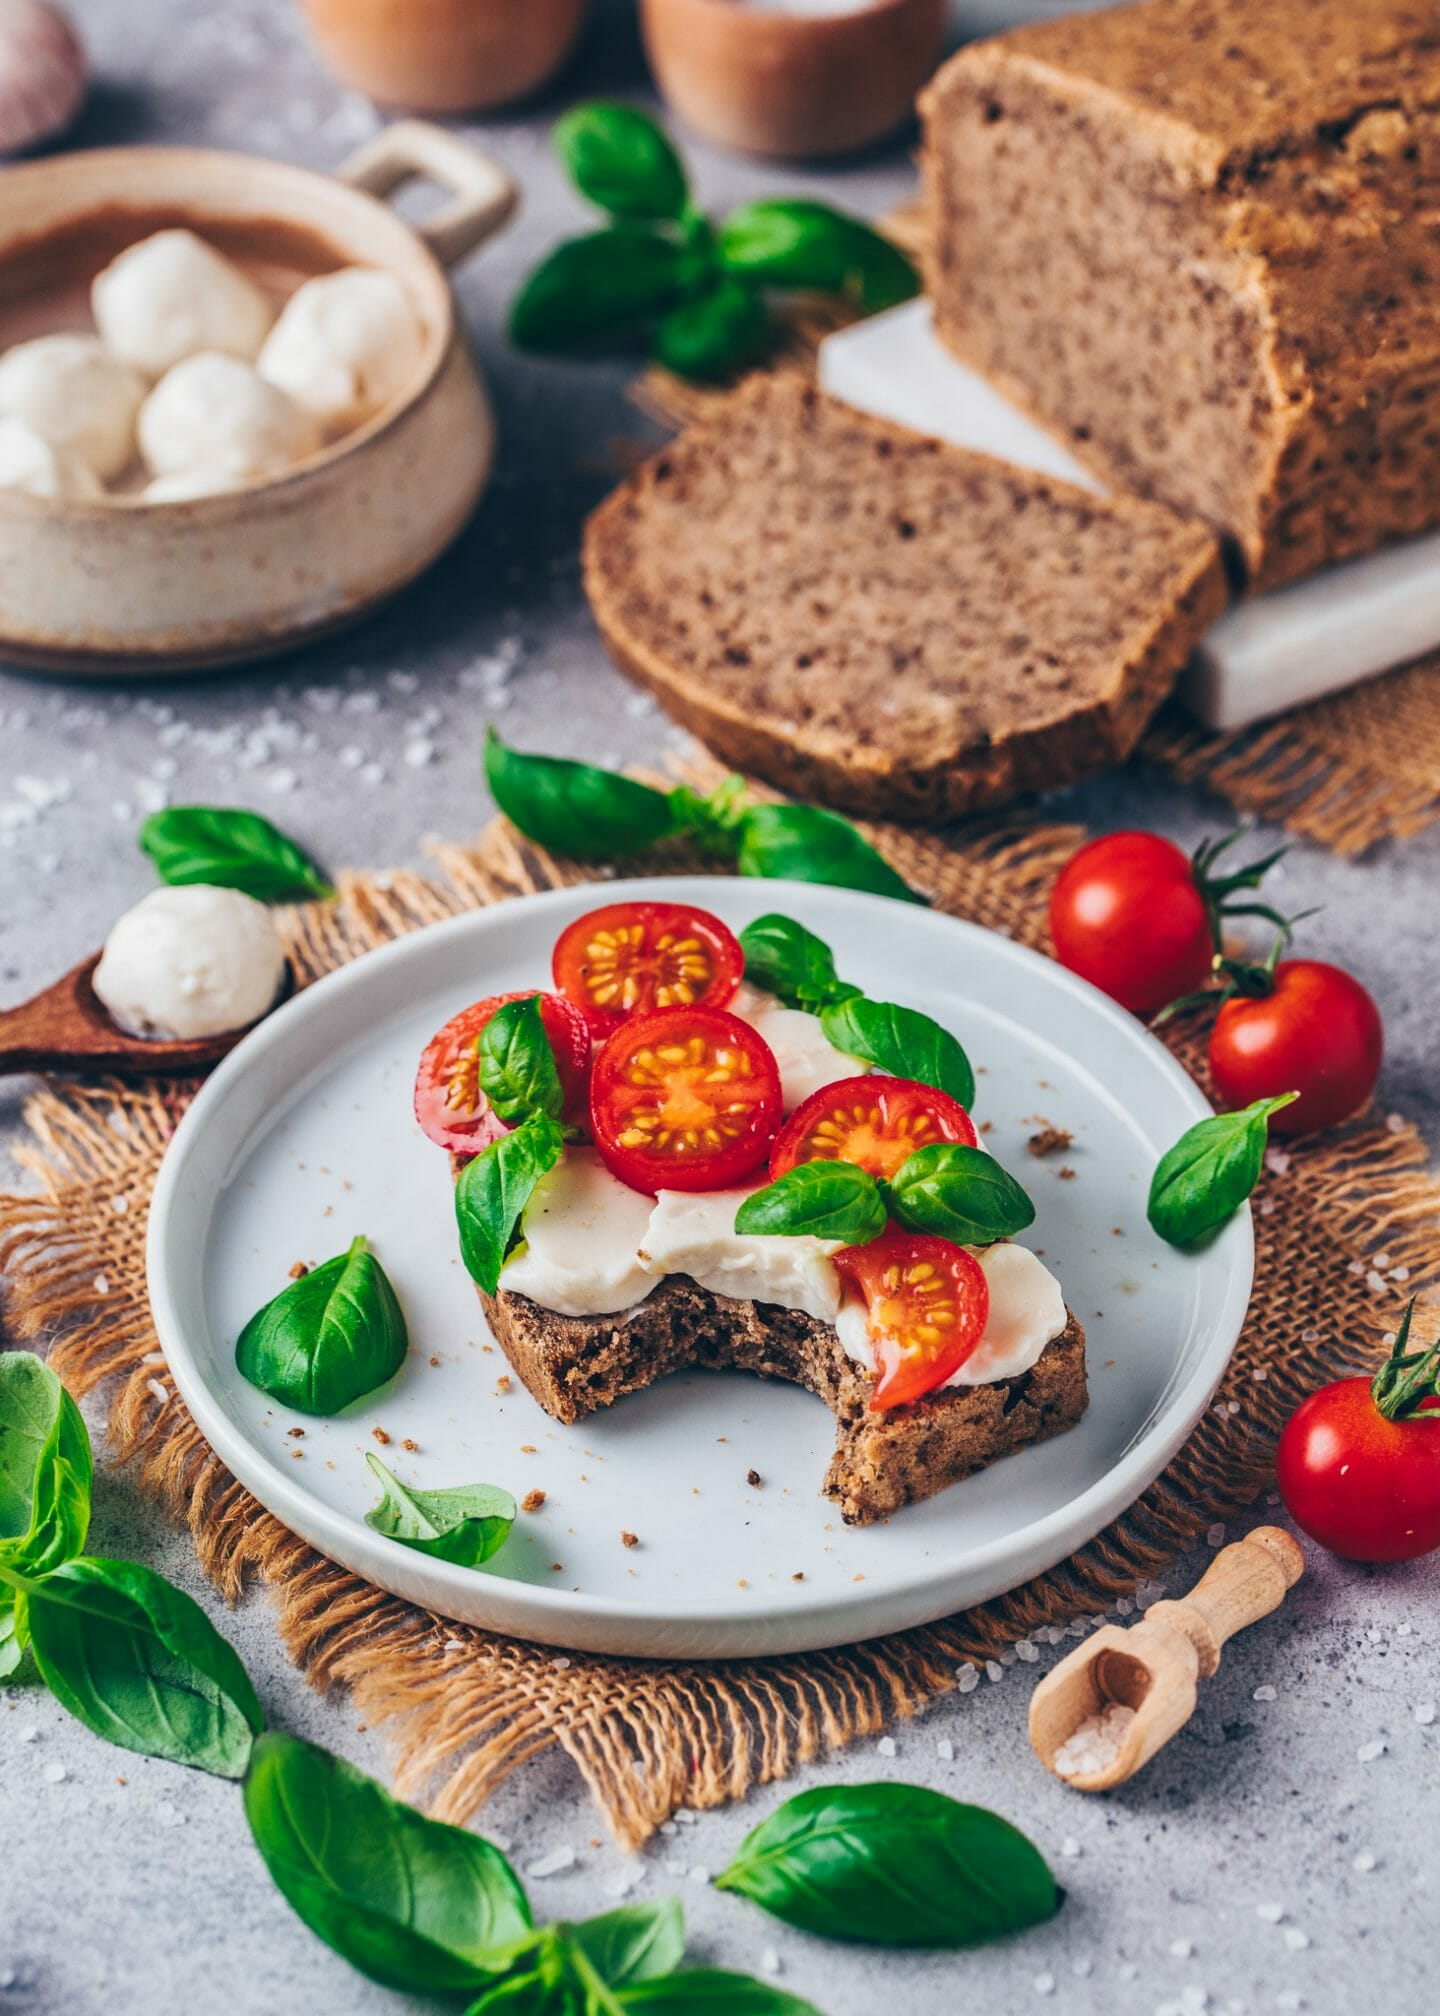 tomato mozzarella bread with basil (easy, vegan, dairy-free cheese)